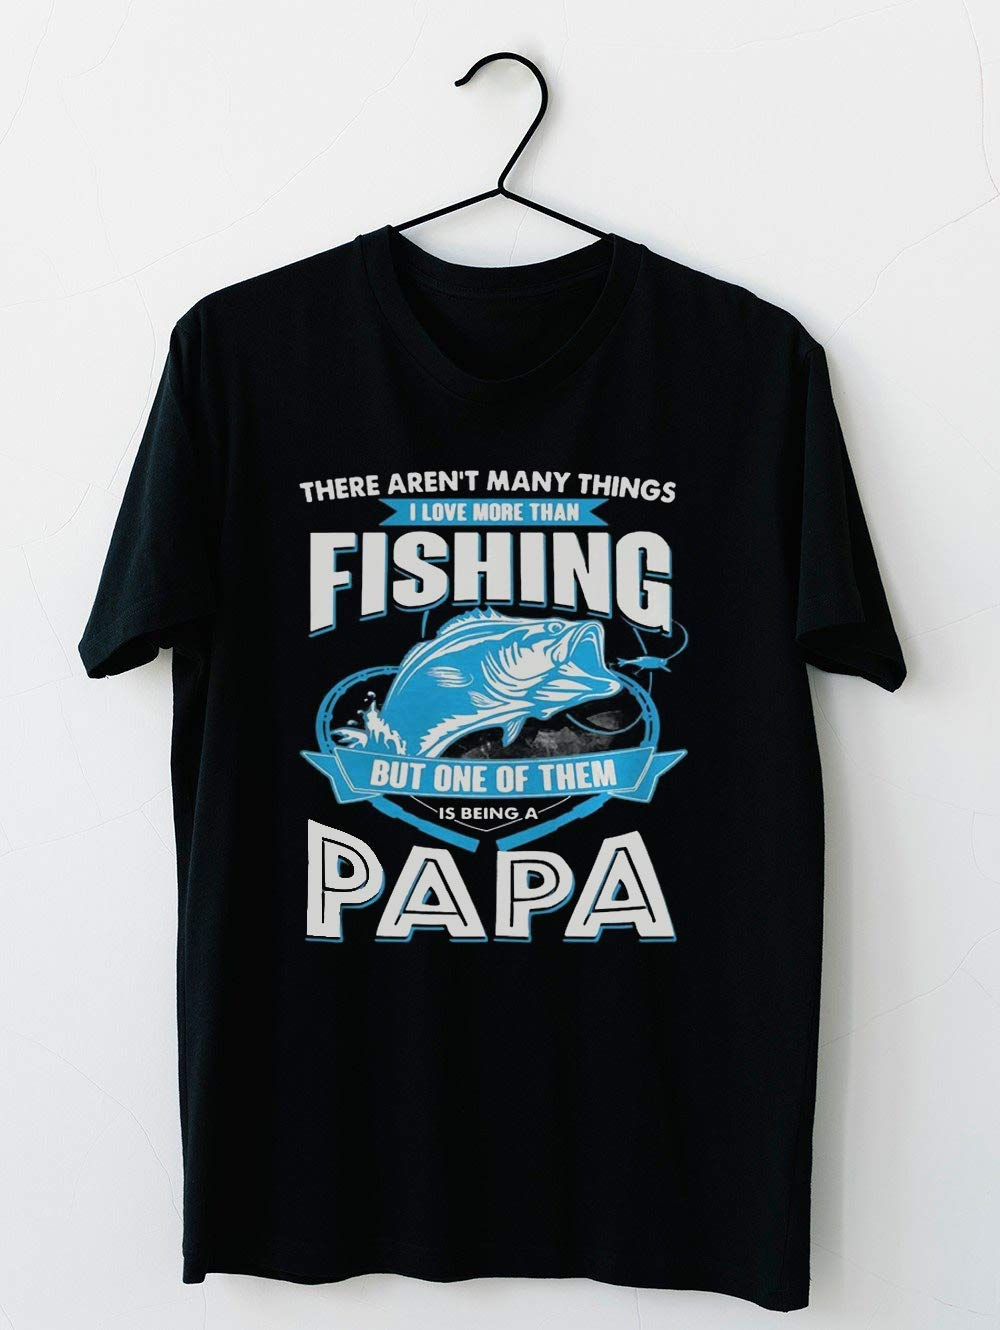 I Love More Than Fishing But One Of Them Is Being A Papa T Shirt Hoodie For Men Women Unisex